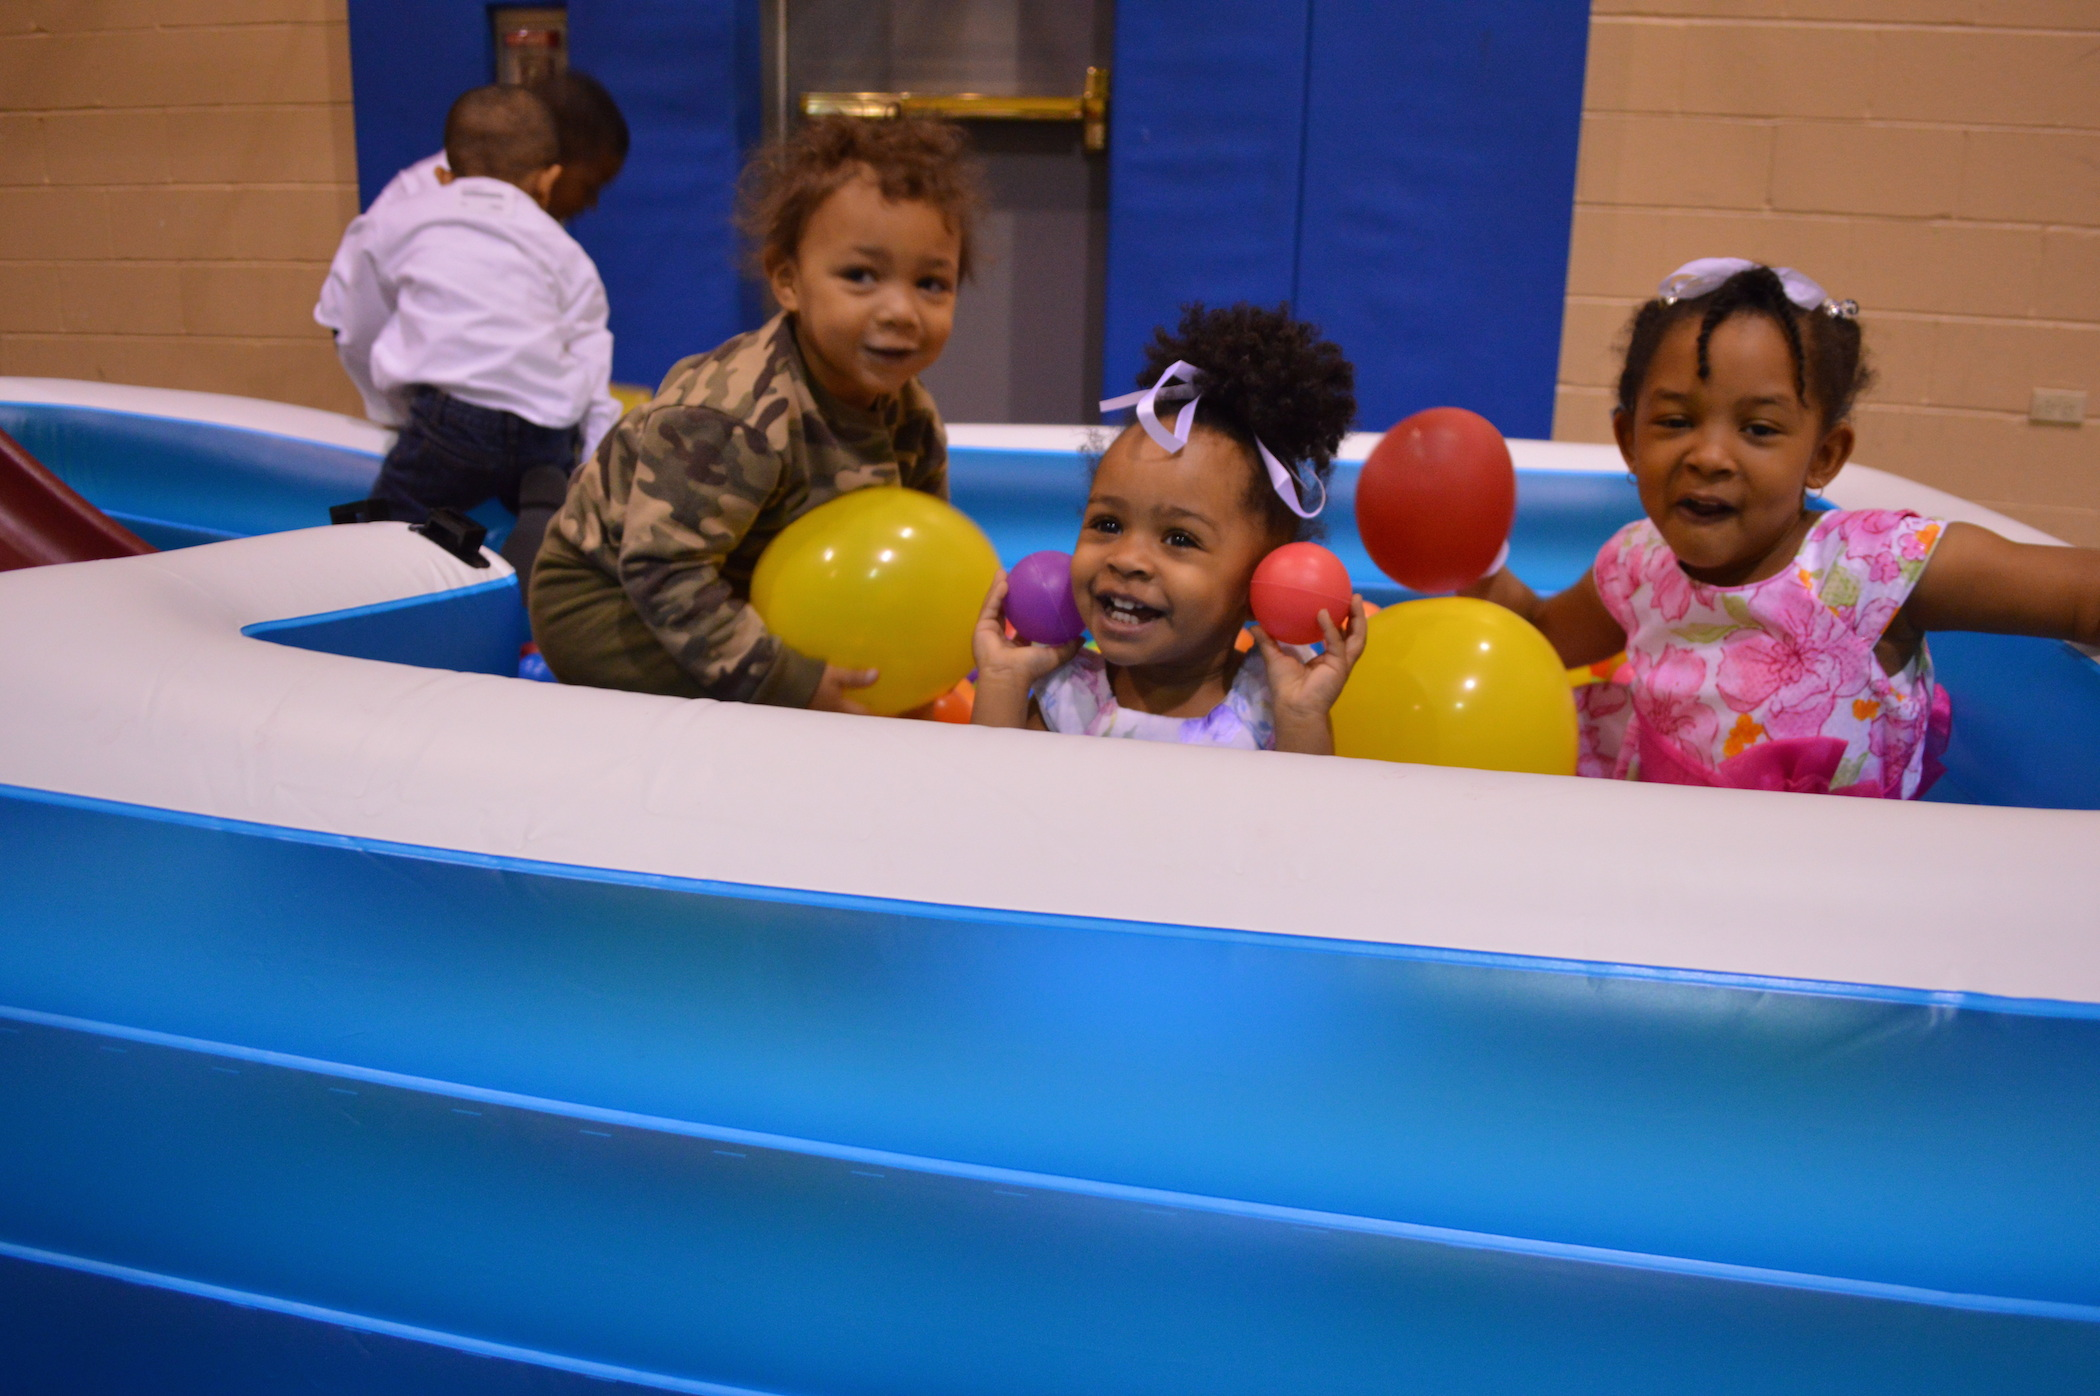 The cutest kids on earth go to KidsLife at CLC!